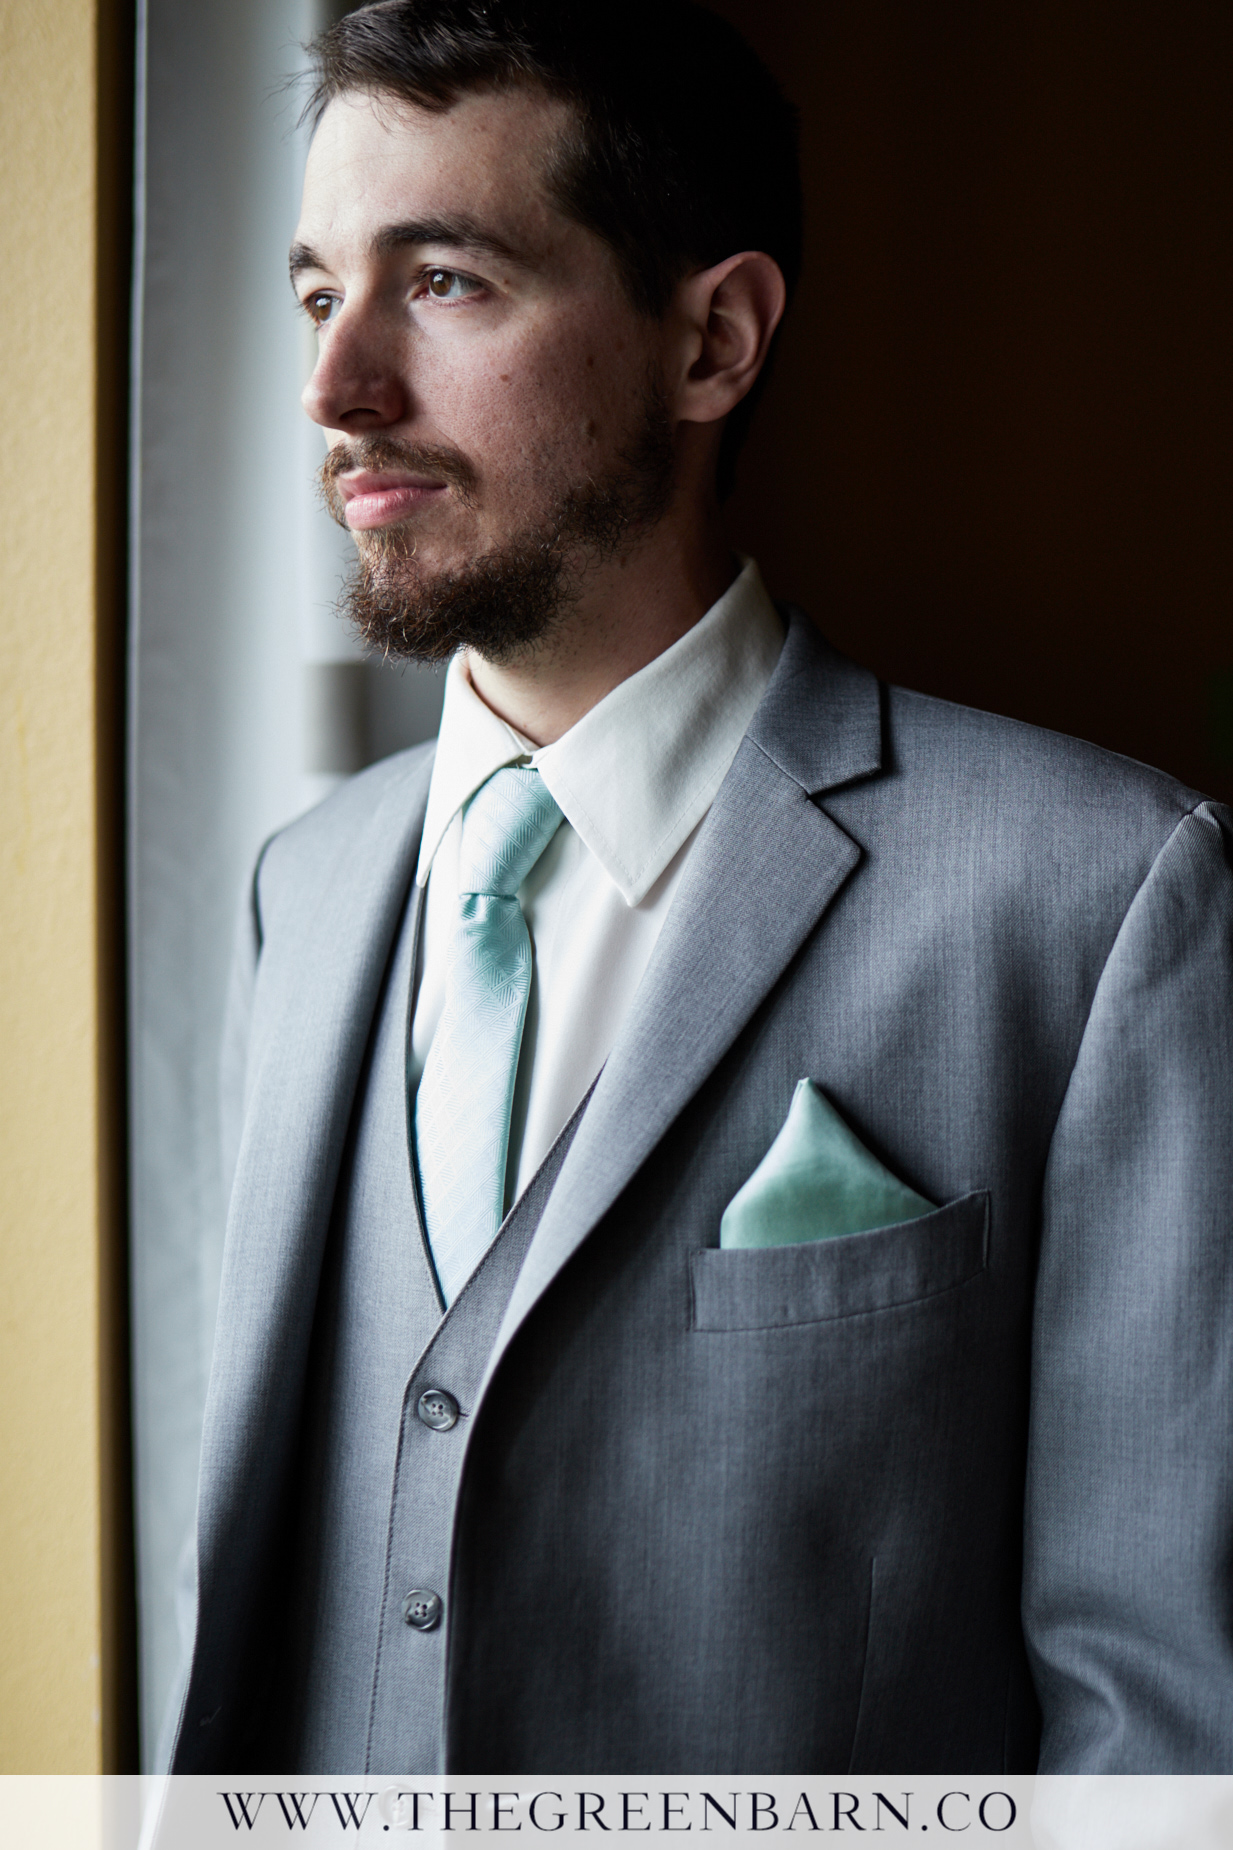 Groom Looking out the Window in a Hotel Room on his Wedding Day